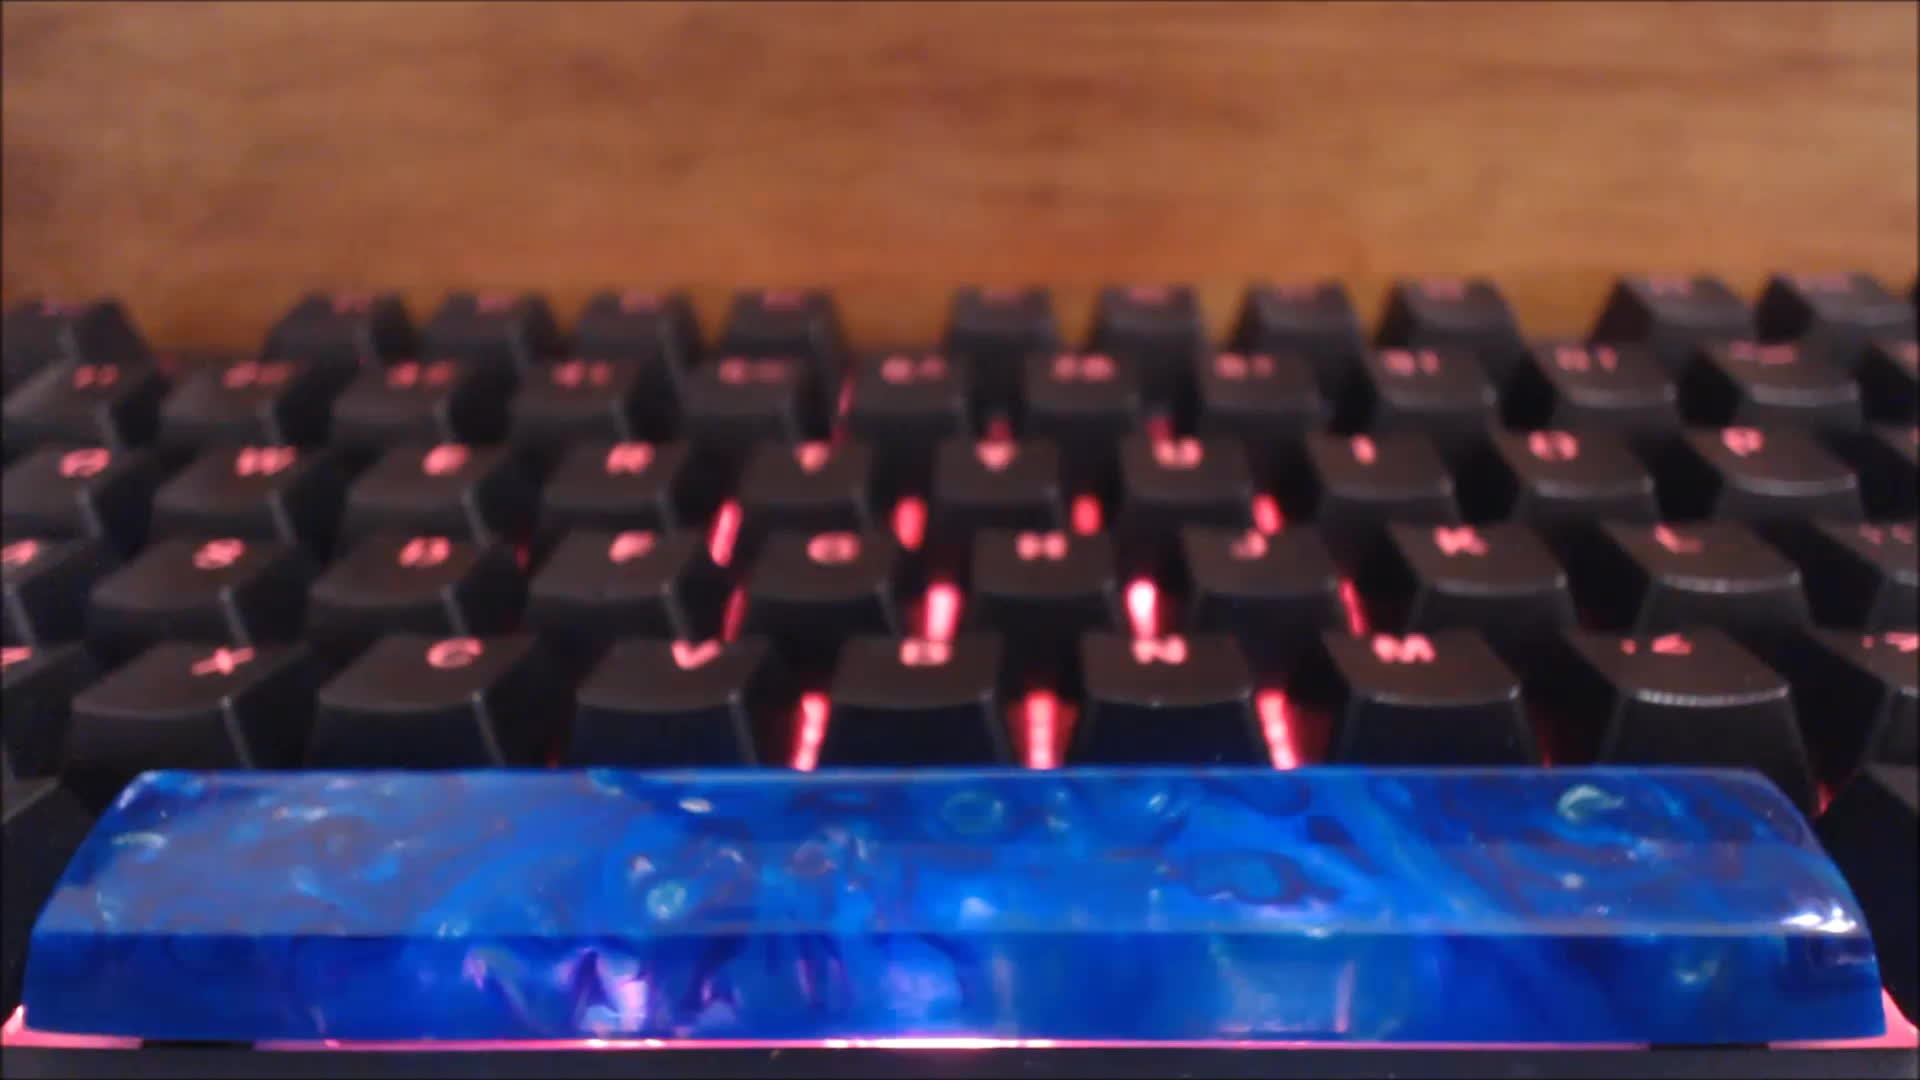 mechanicalkeyboards, Blue Brew by Ramage (Spacebar Flipped) GIFs